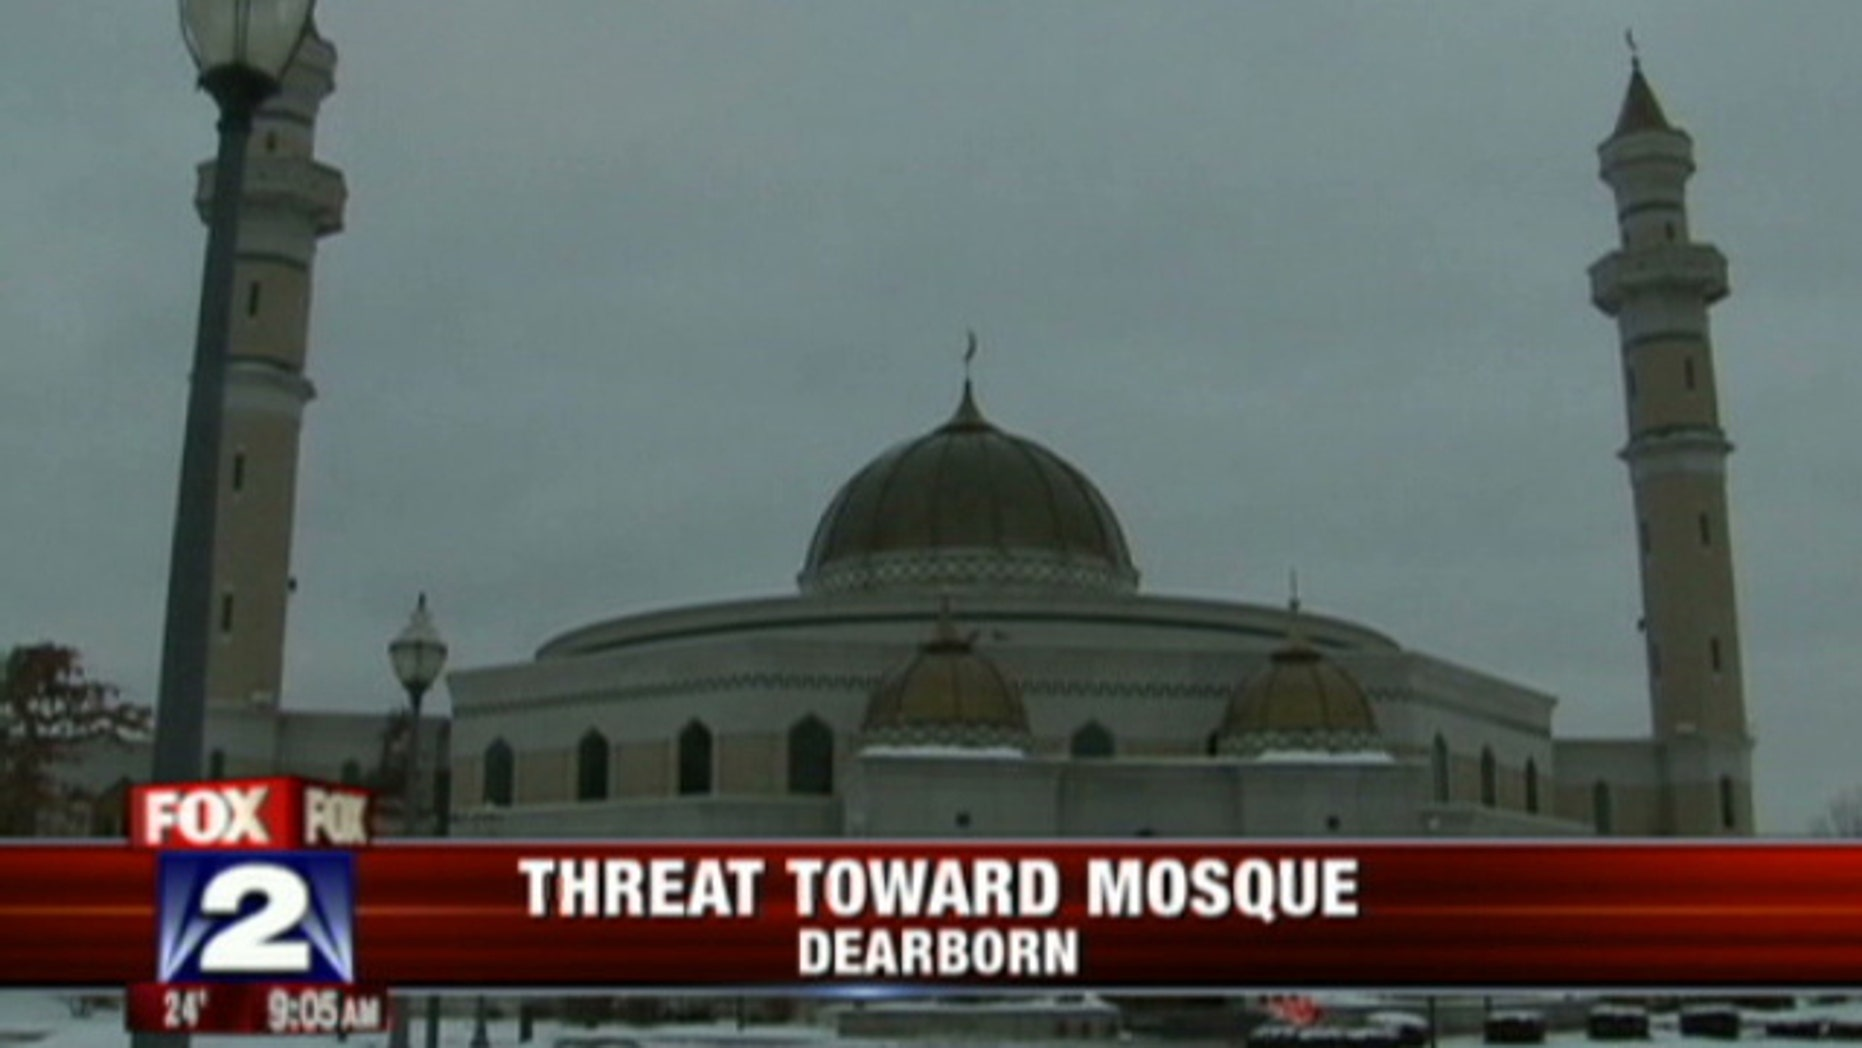 Authorities say 63-year-old Roger Stockham was found with explosives outside the Islamic Center of America in Dearborn, Mich. (MyFoxDetroit.com).